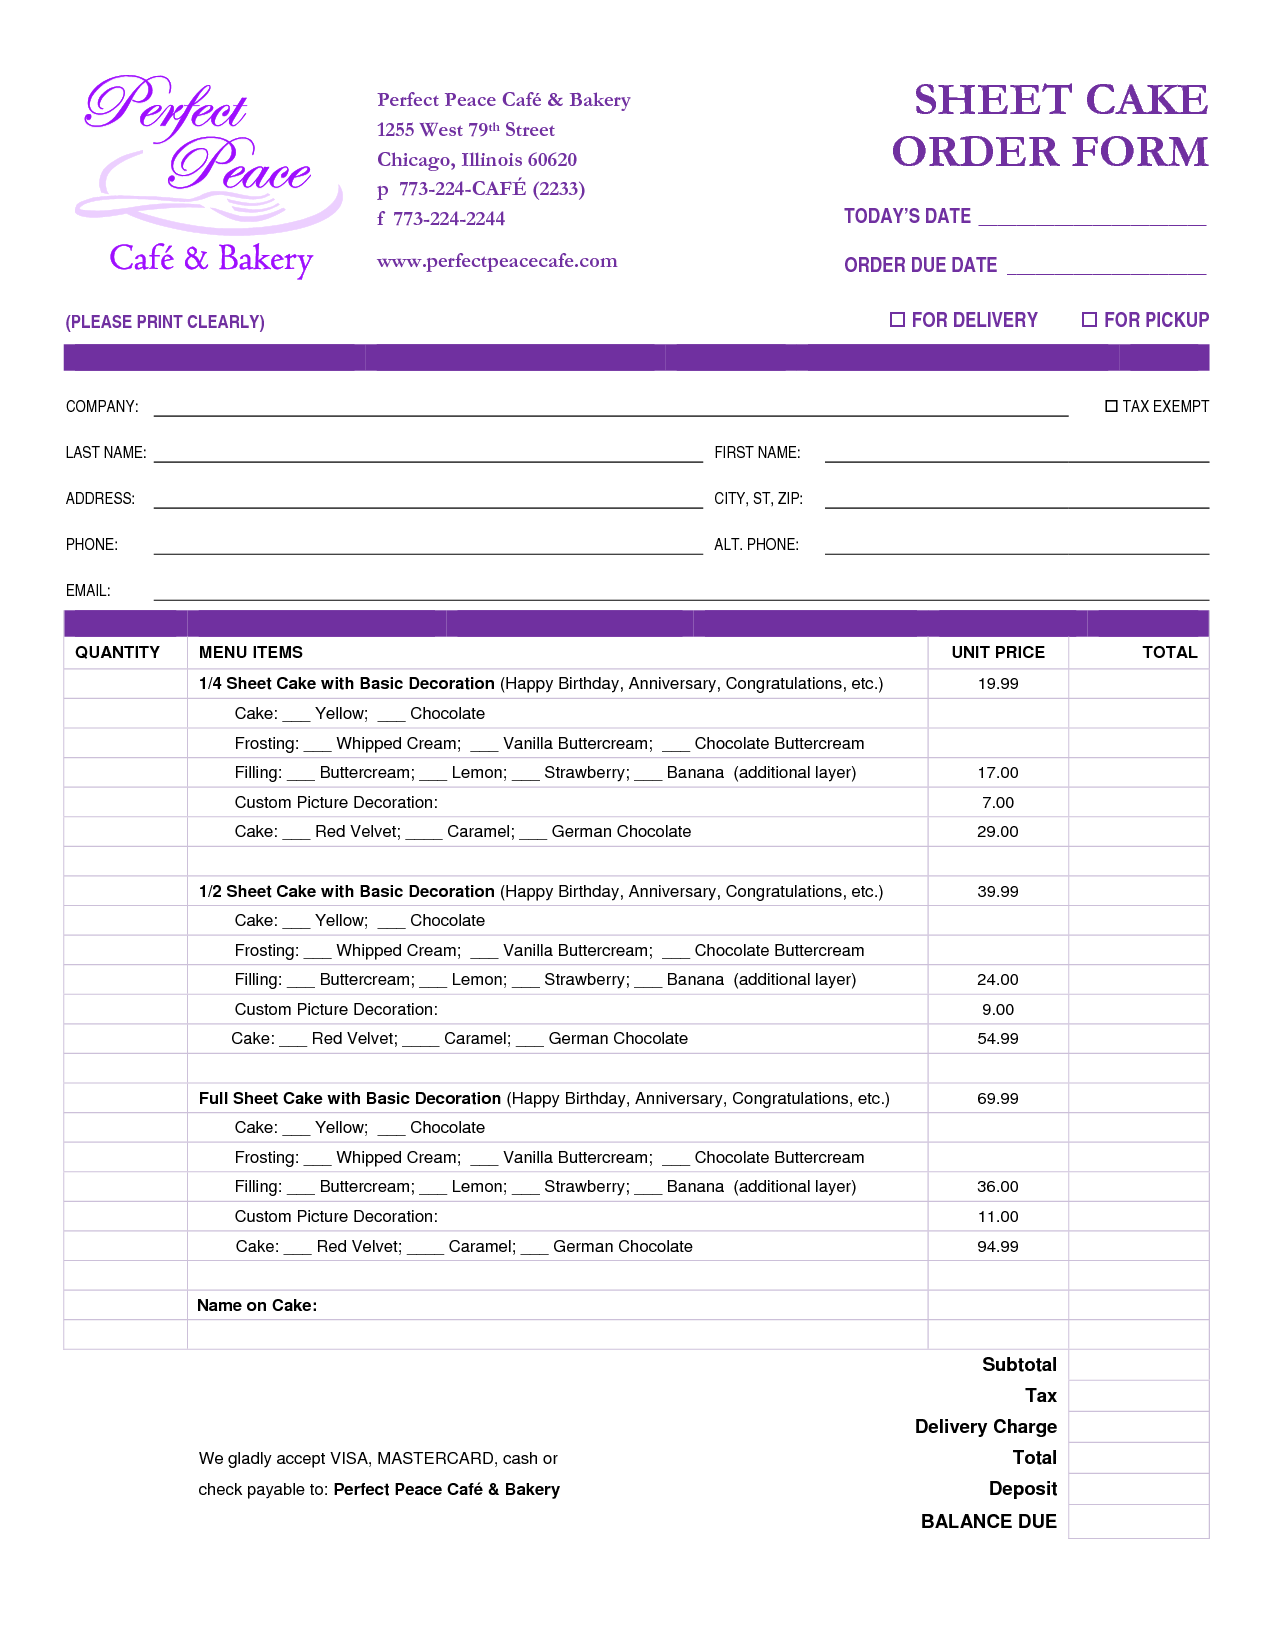 Cake Order Form Template Free Download  Google Search  Just